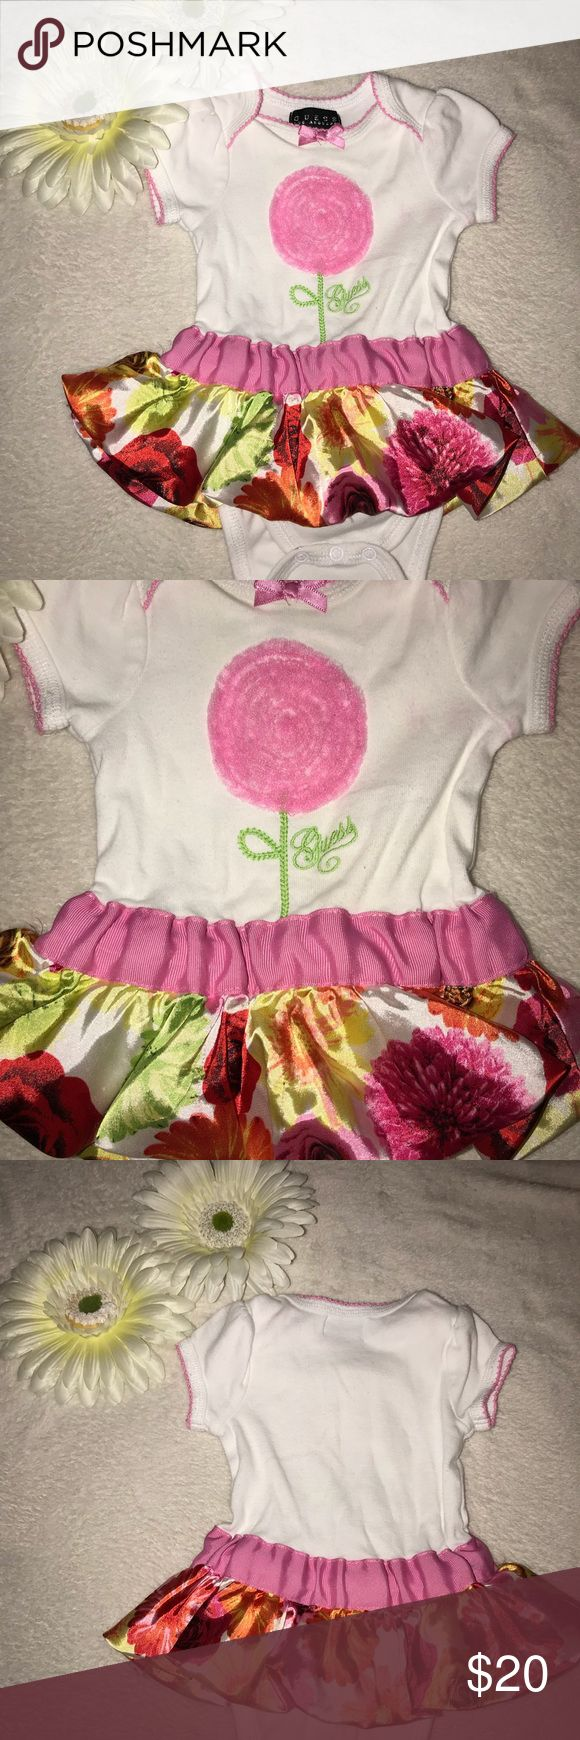 💐🌸Guess Dress 3-6 mos Girl 🌸💐 💐🌸 Baby girl will look chic and stellar in this floral dress by Guess Los Angeles, size 3-6 mos Girl 🌸💐 Guess Dresses Casual